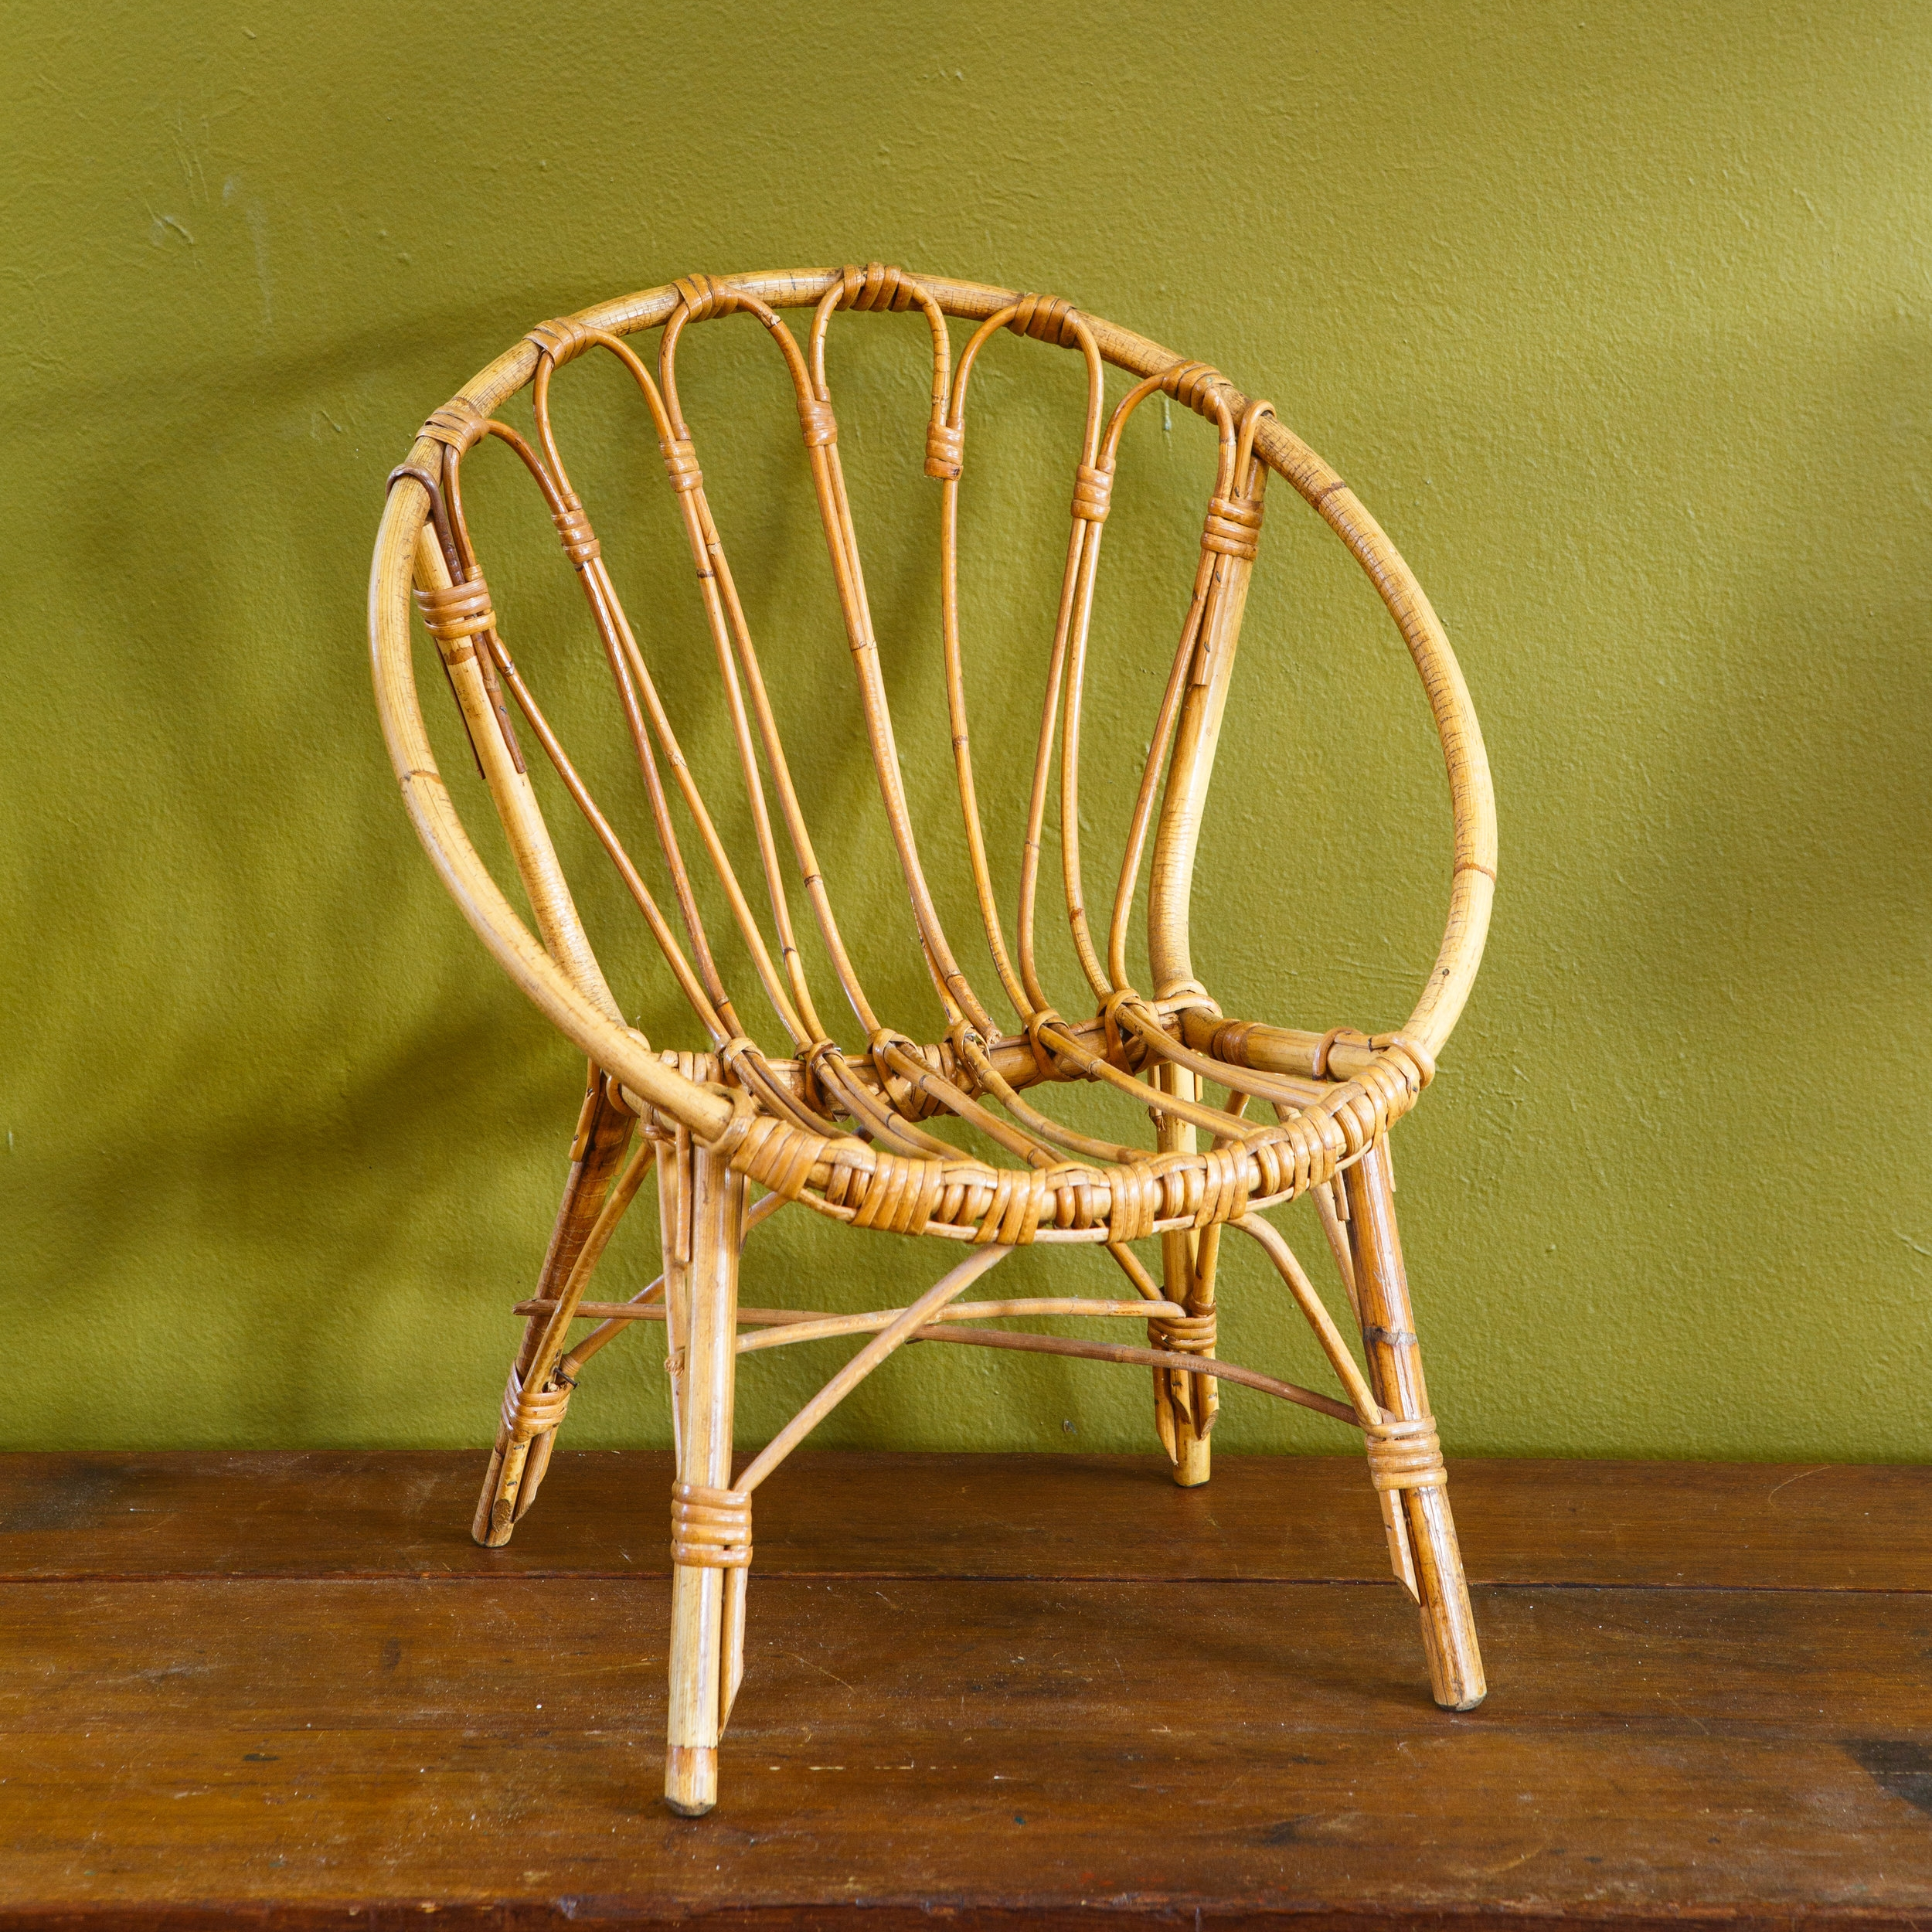 Bamboo/Rattan Child's Chair